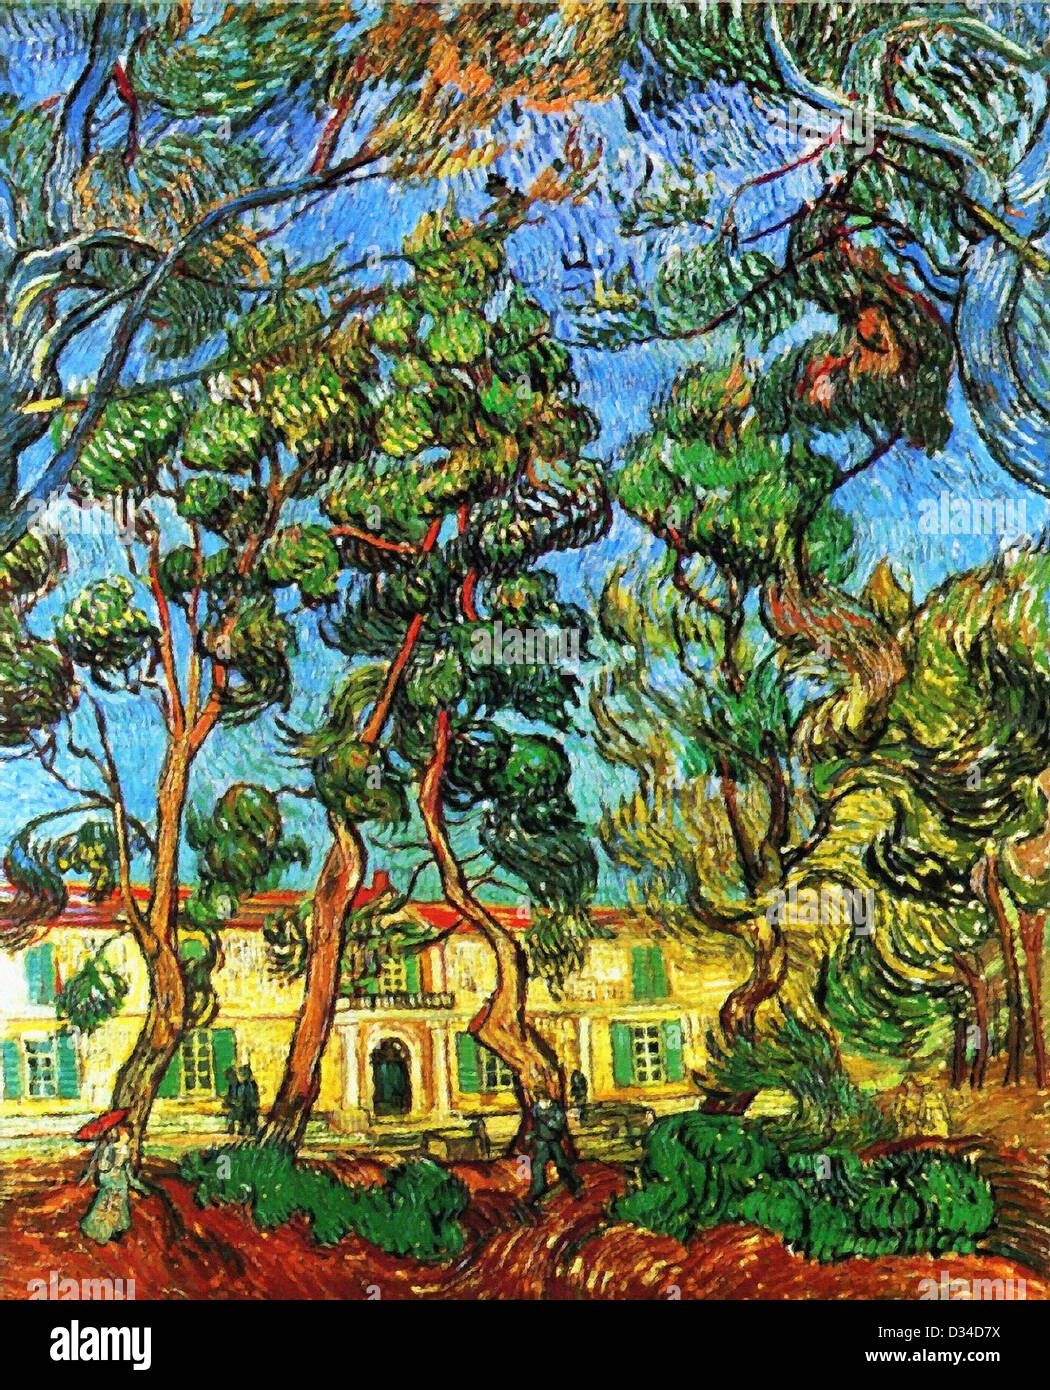 Vincent van Gogh, The Grounds of the Asylum. 1889. Post-Impressionism. Oil on canvas. Armand Hammer Museum of Art - Stock Image